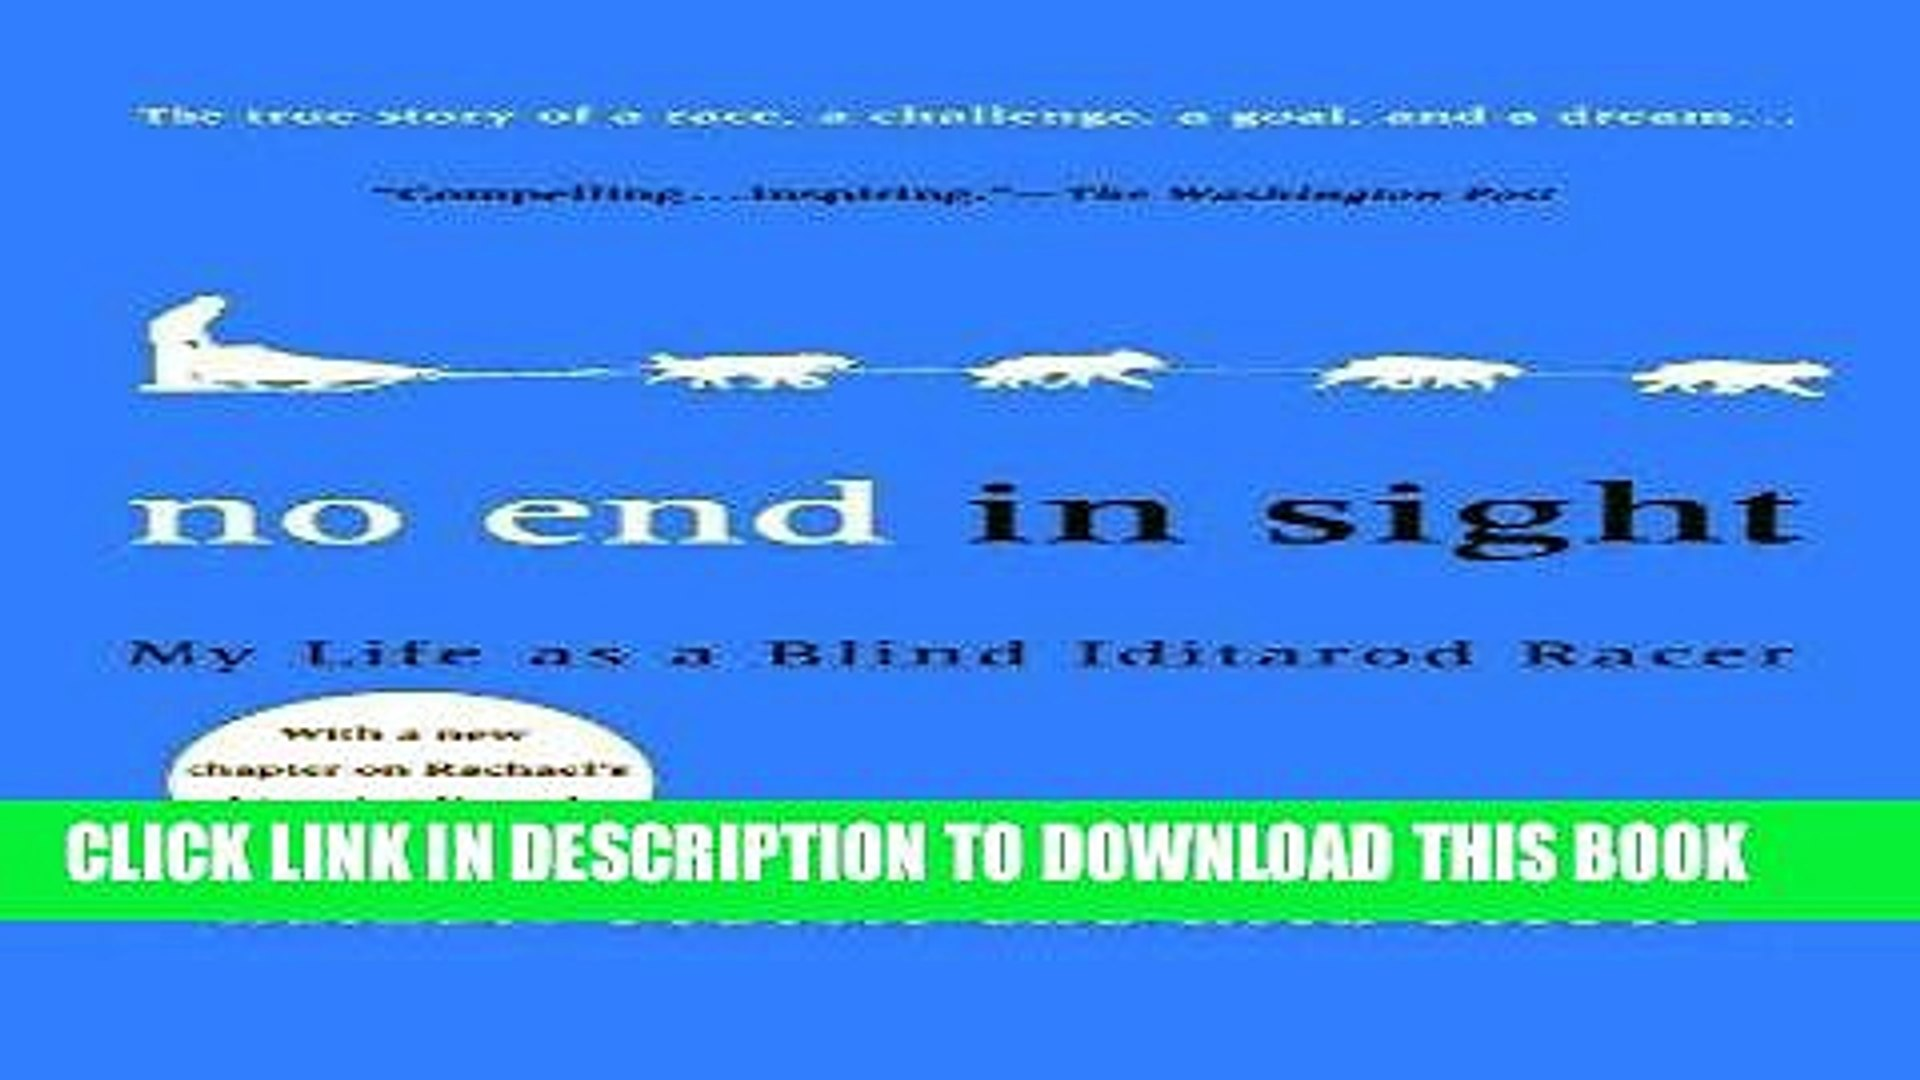 No End in Sight My Life as a Blind Iditarod Racer